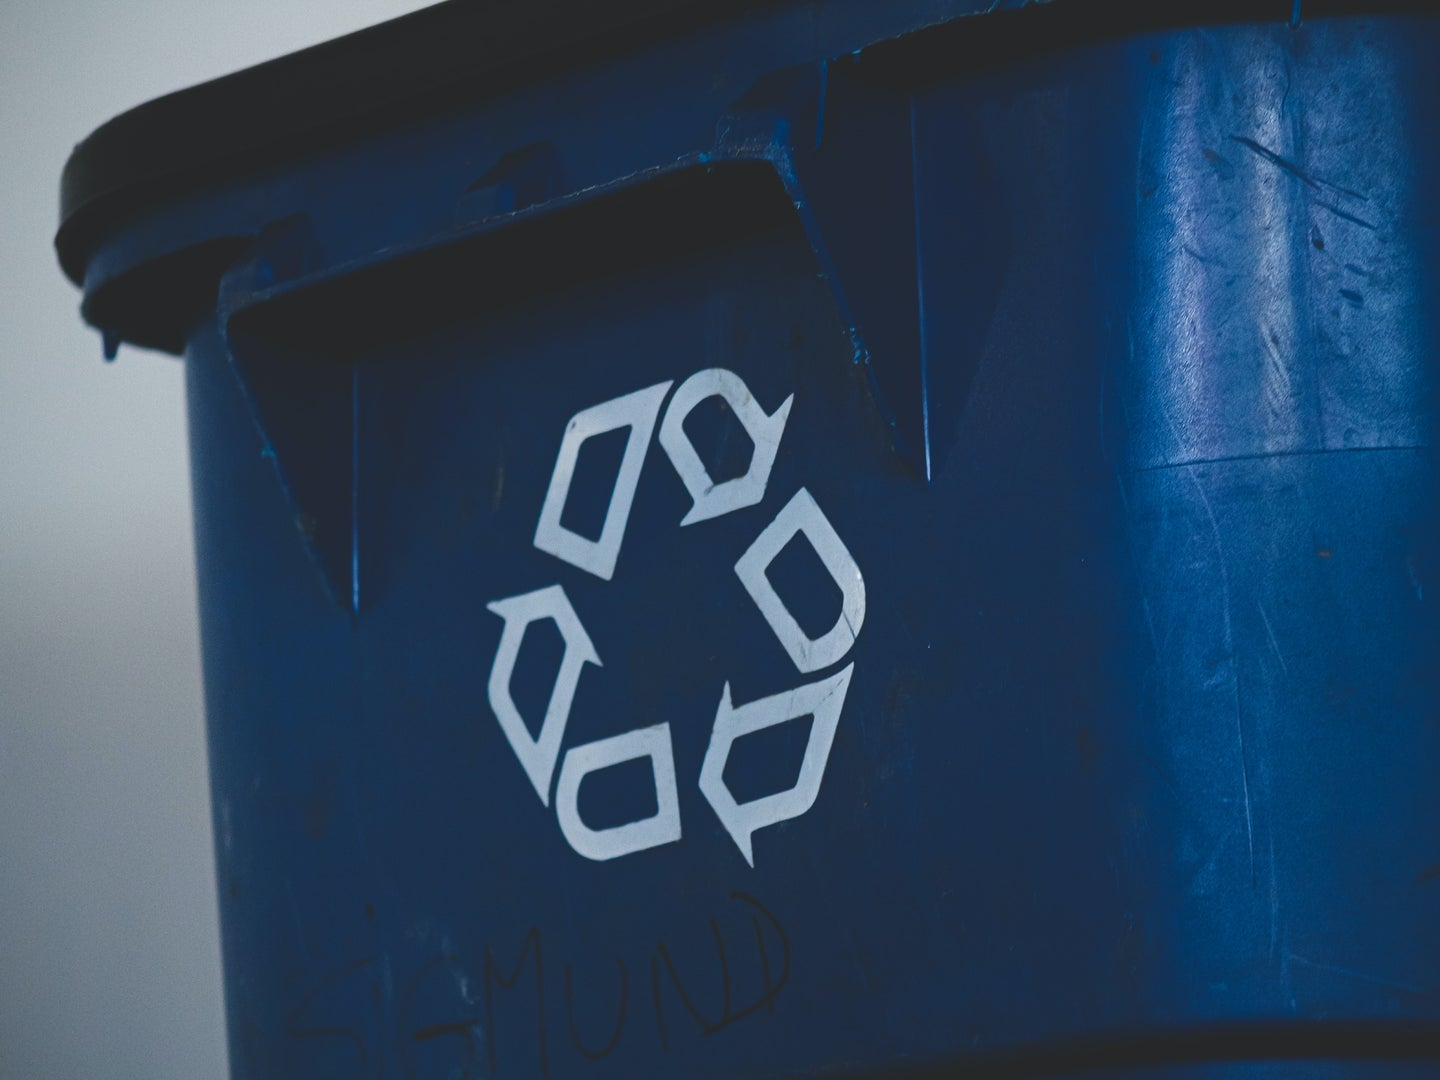 A blue recycling bin with a recycling symbol on it.